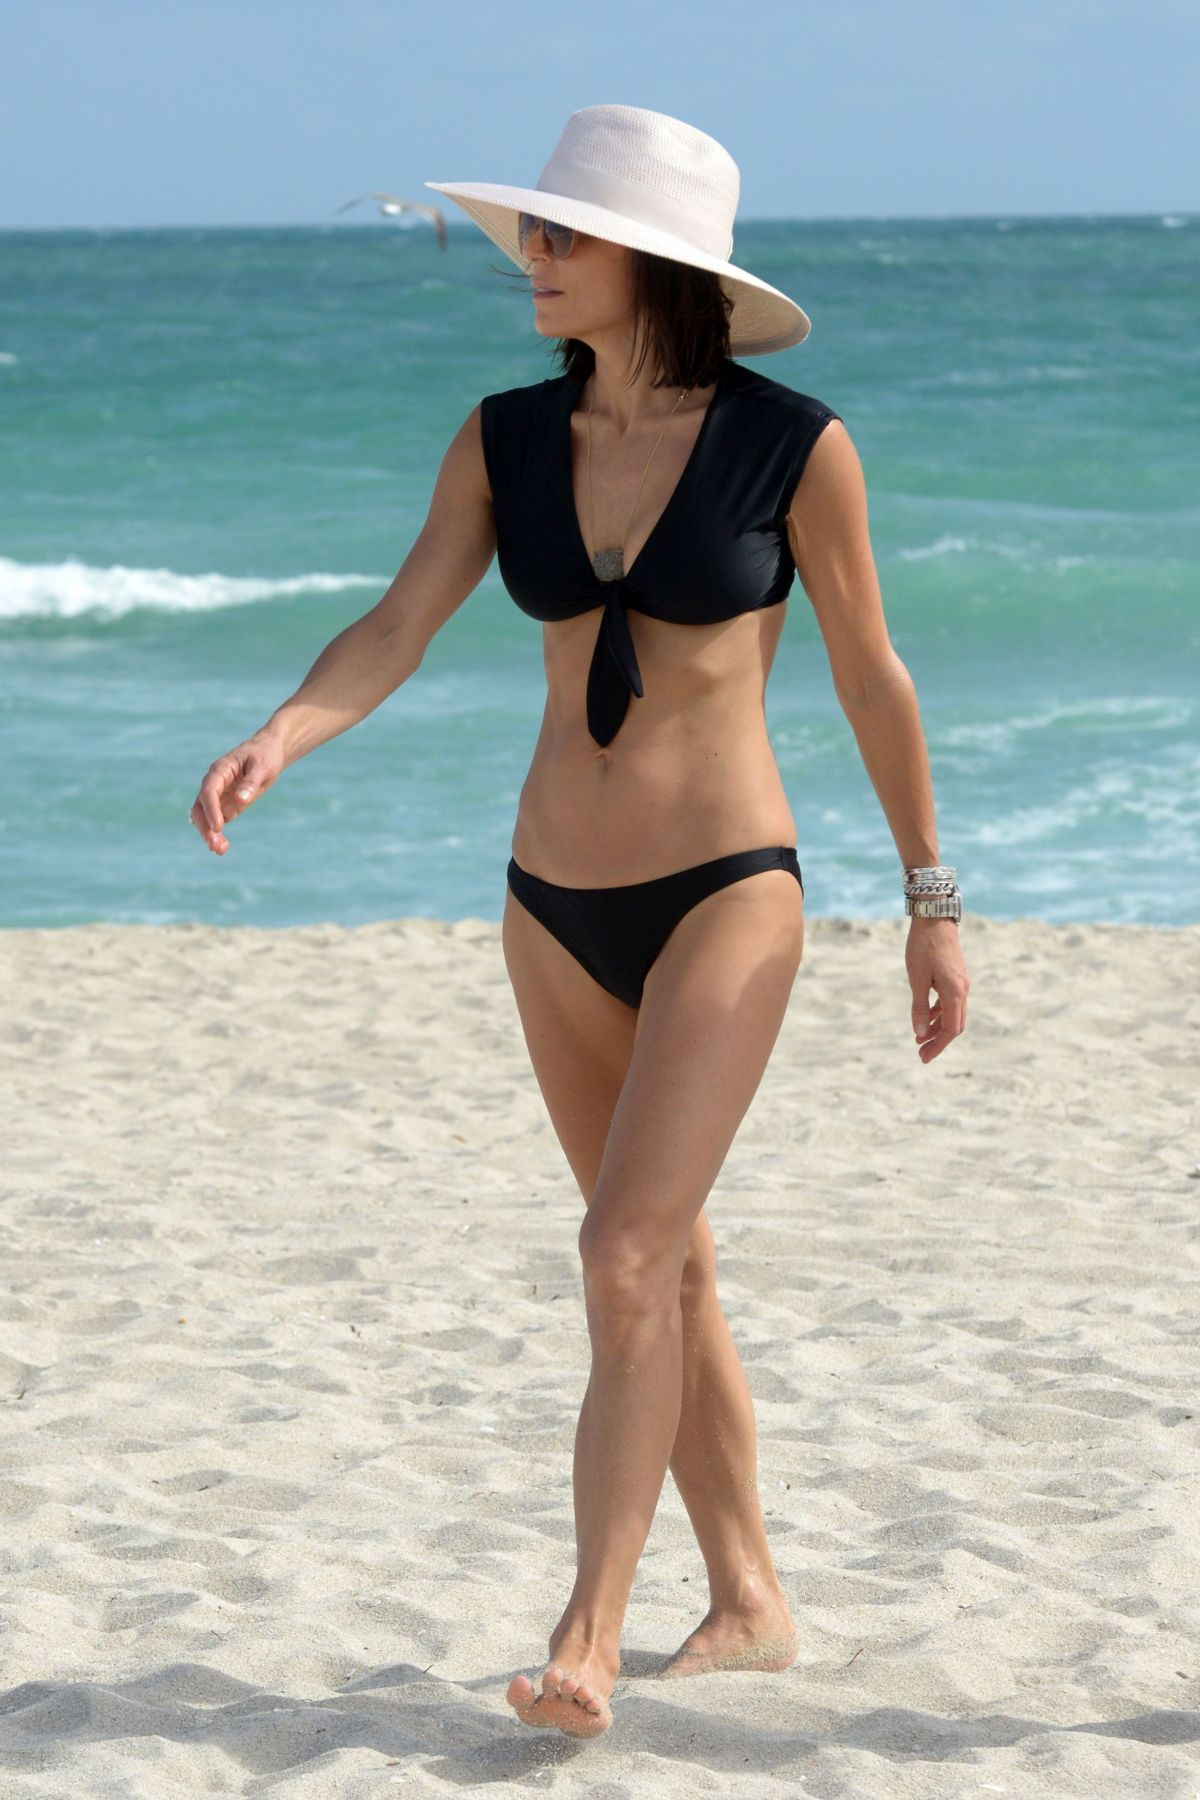 BETHENNY FRANKEL in Bikini on the Beach in Miami 12/05/2016   bethenny-frankel-in-bikini-on-the-beach-in-miami-12-05-2016_50